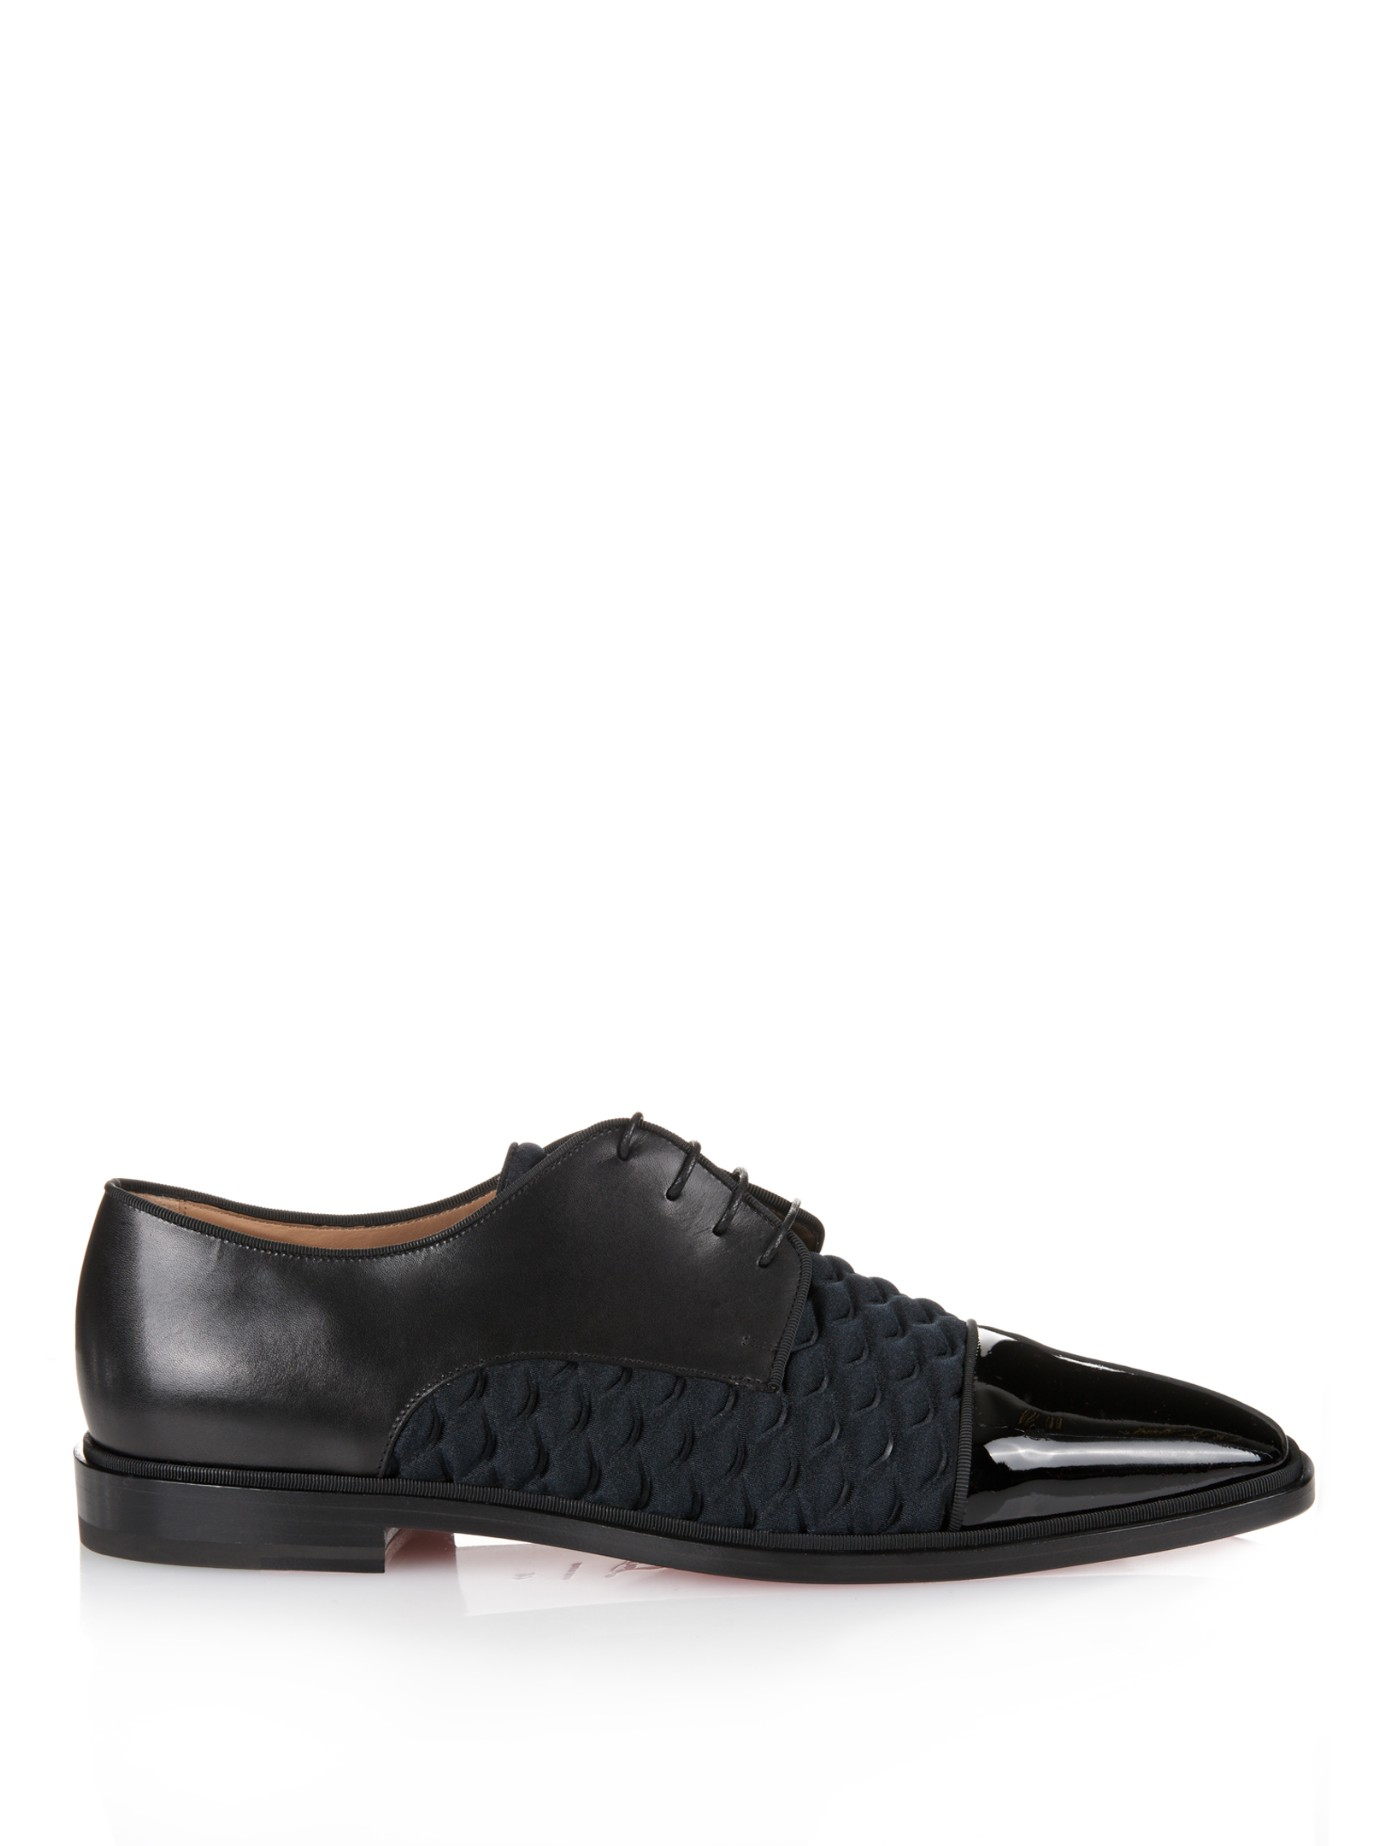 9e9c2541755 new zealand christian louboutin bruno orlato flat screen f19f8 6865e